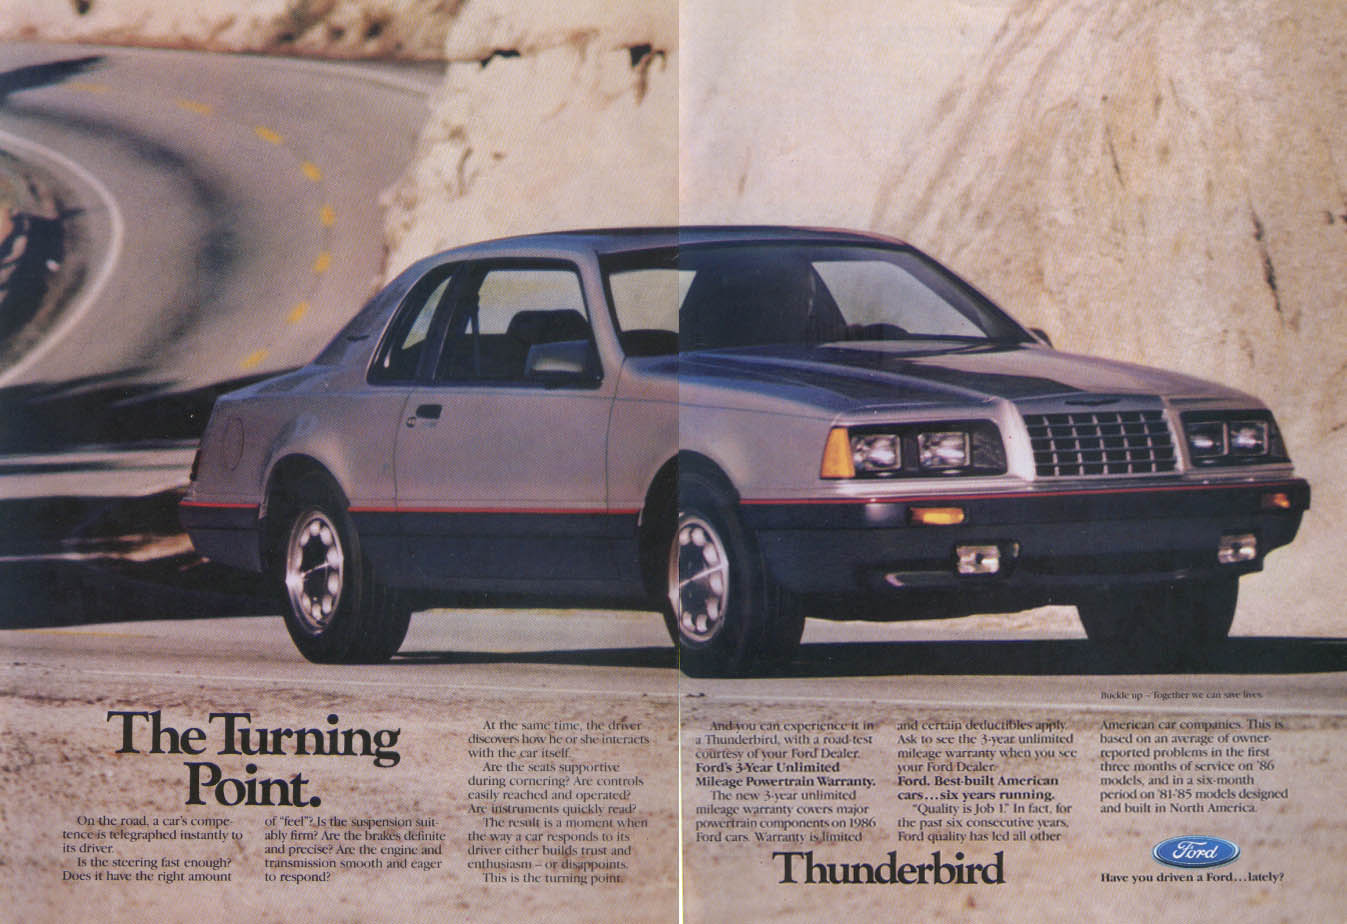 Image for Ford Thunderbird Turning Point ad 1986